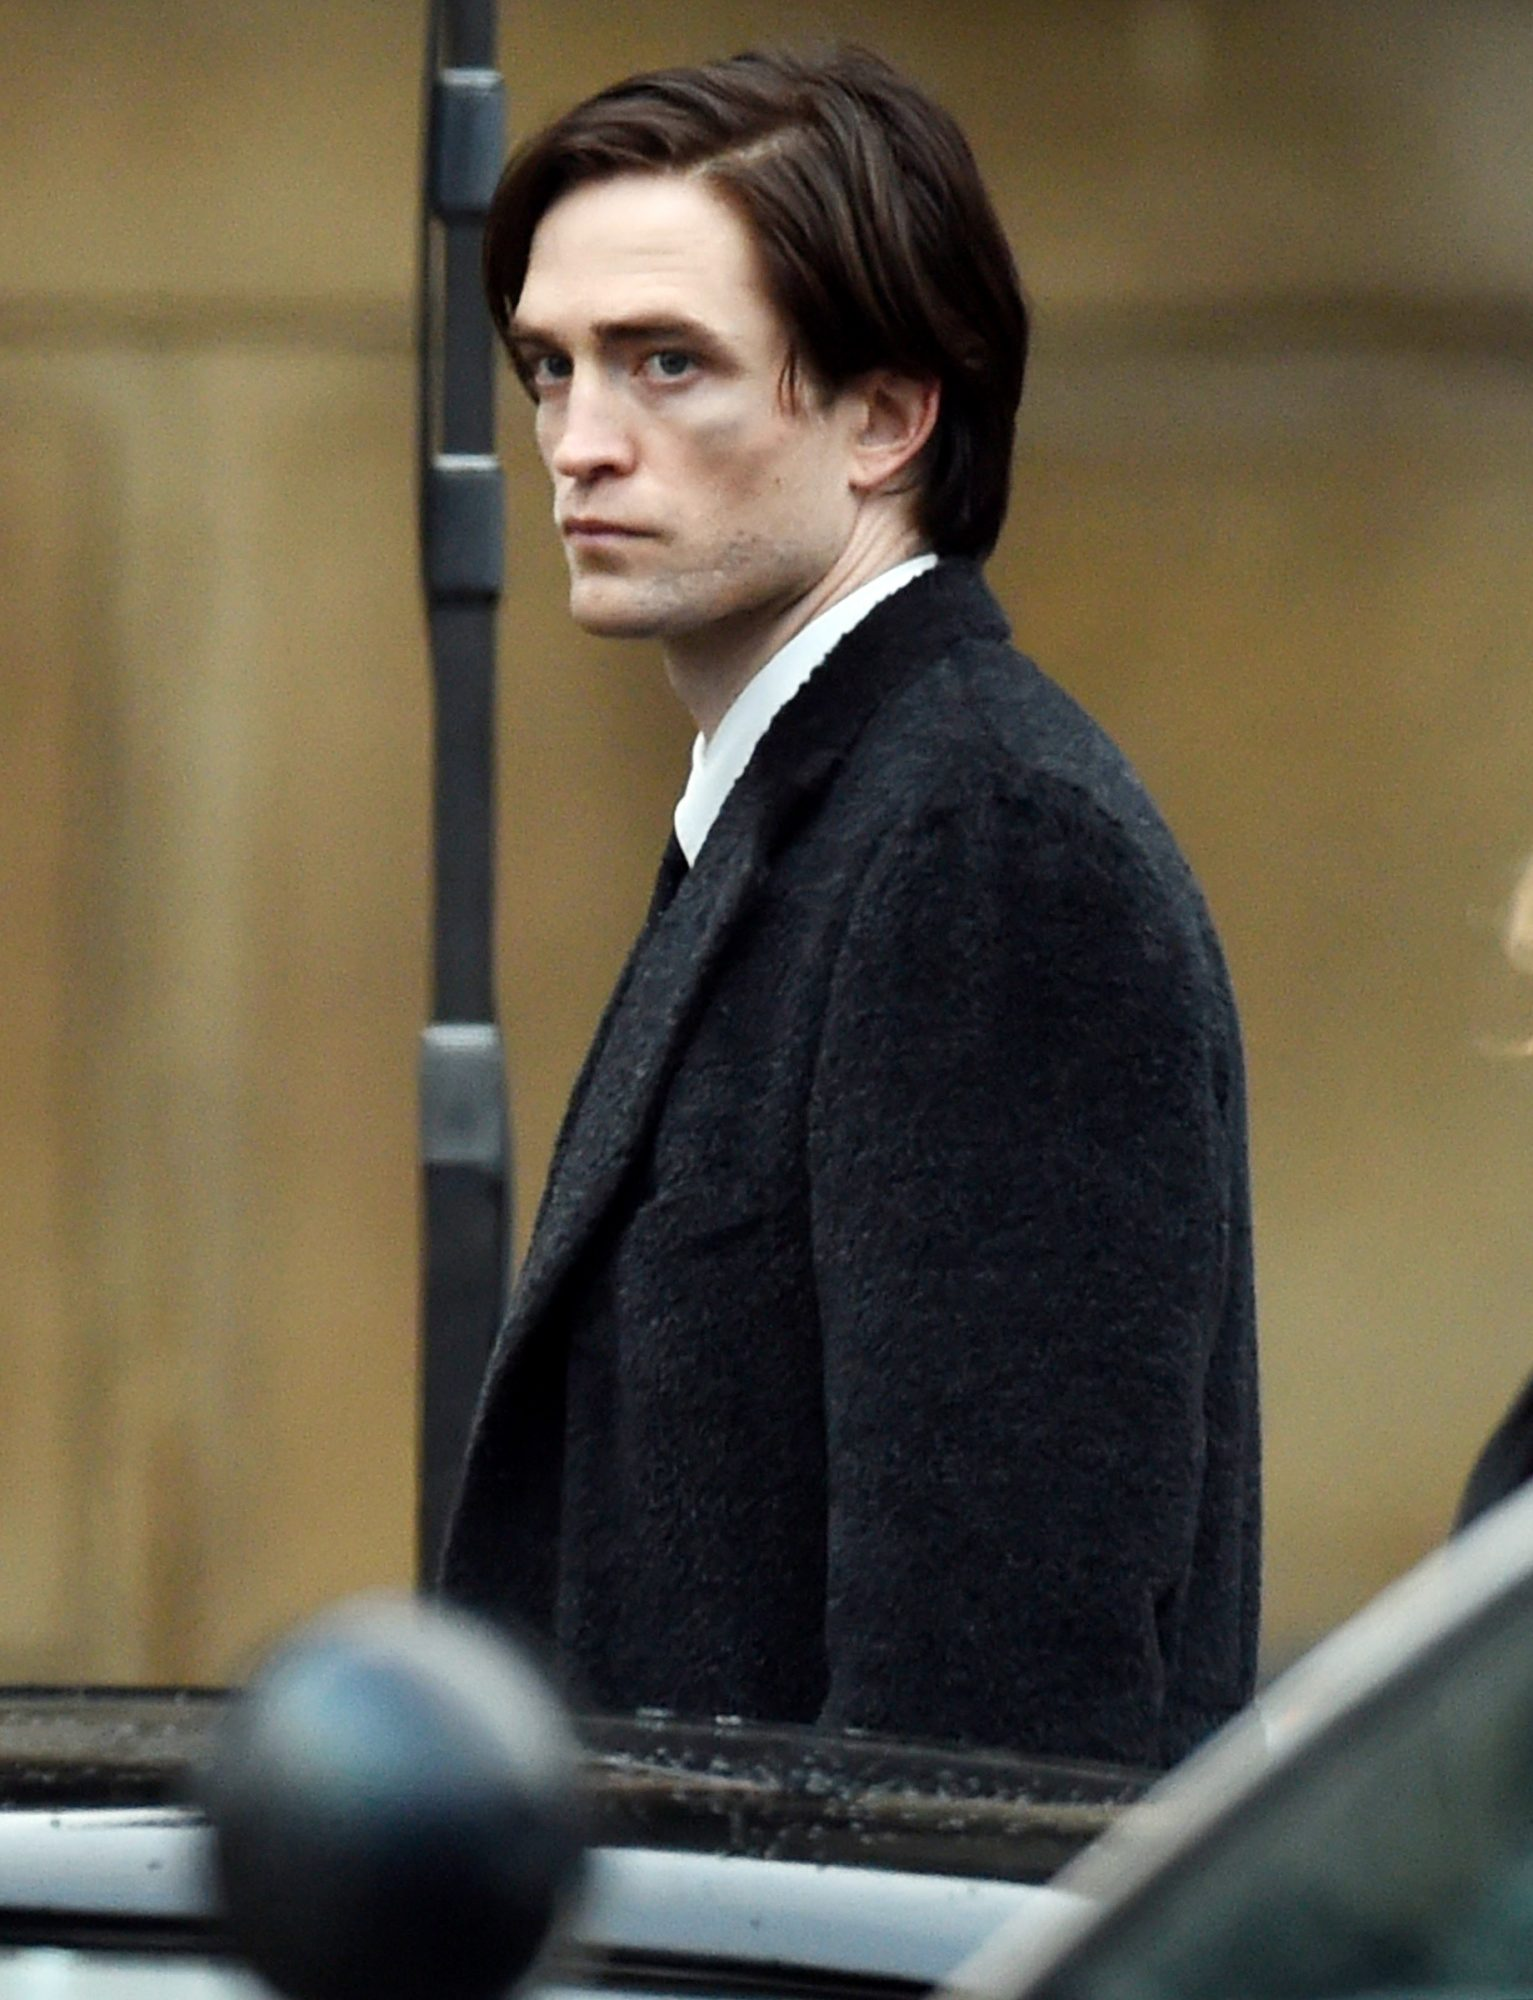 Robert Pattinson on location for 'The Batman'